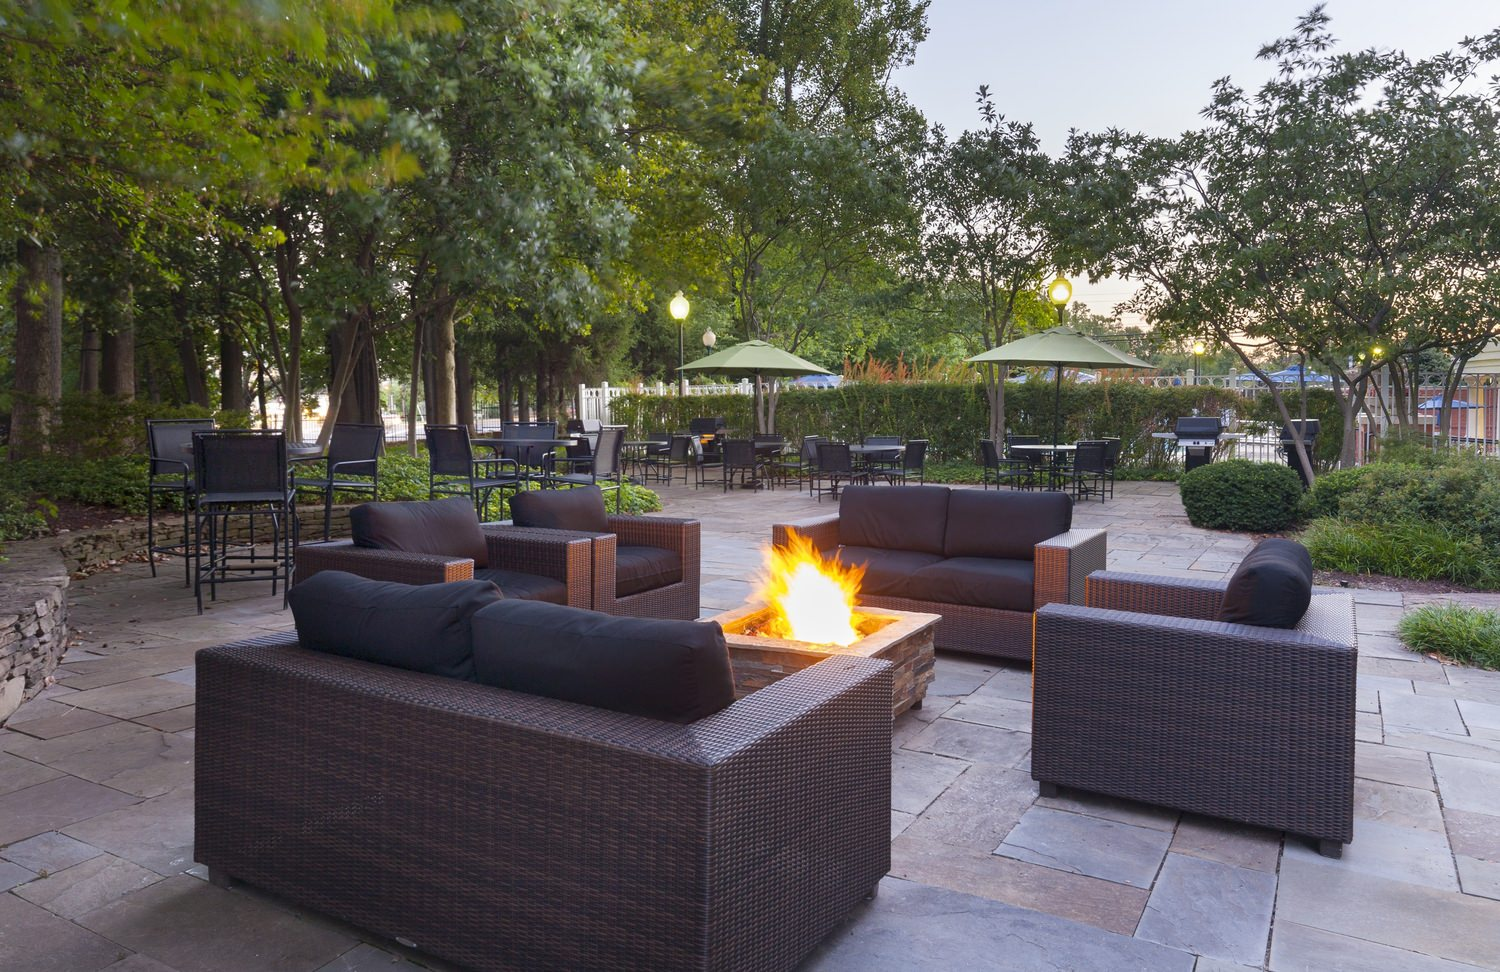 Outdoor chairs and couches circle a fire pit on a patio.